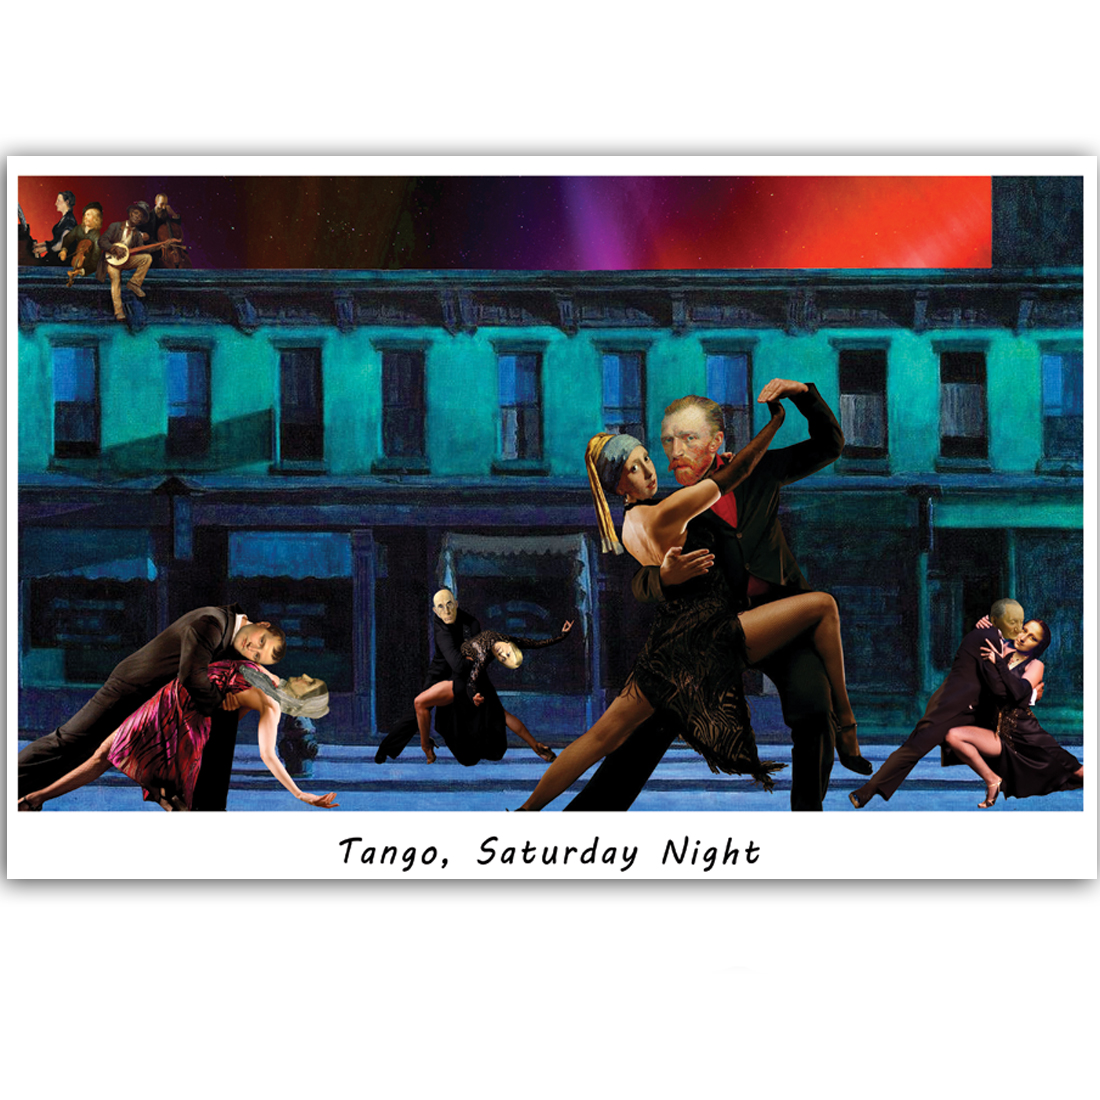 Tango, Saturday Night